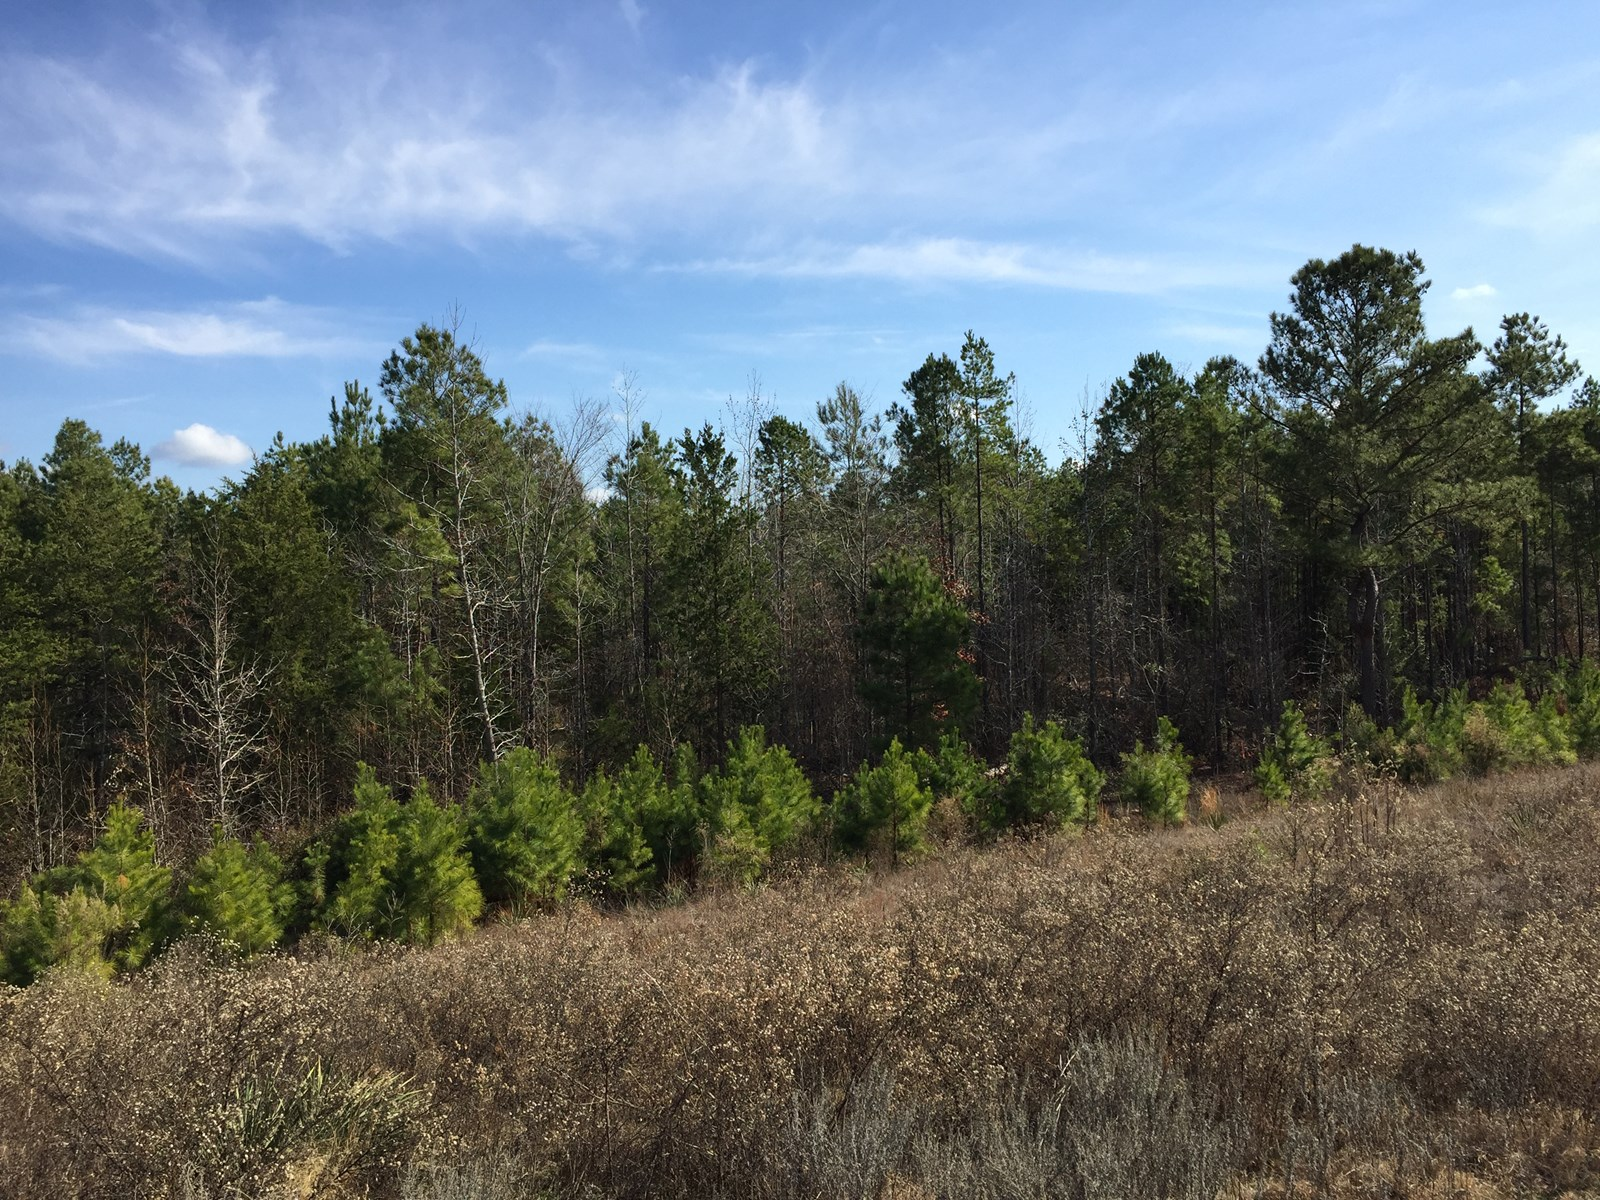 East Texas Land For Sale, 60 ac, home site/hunting property